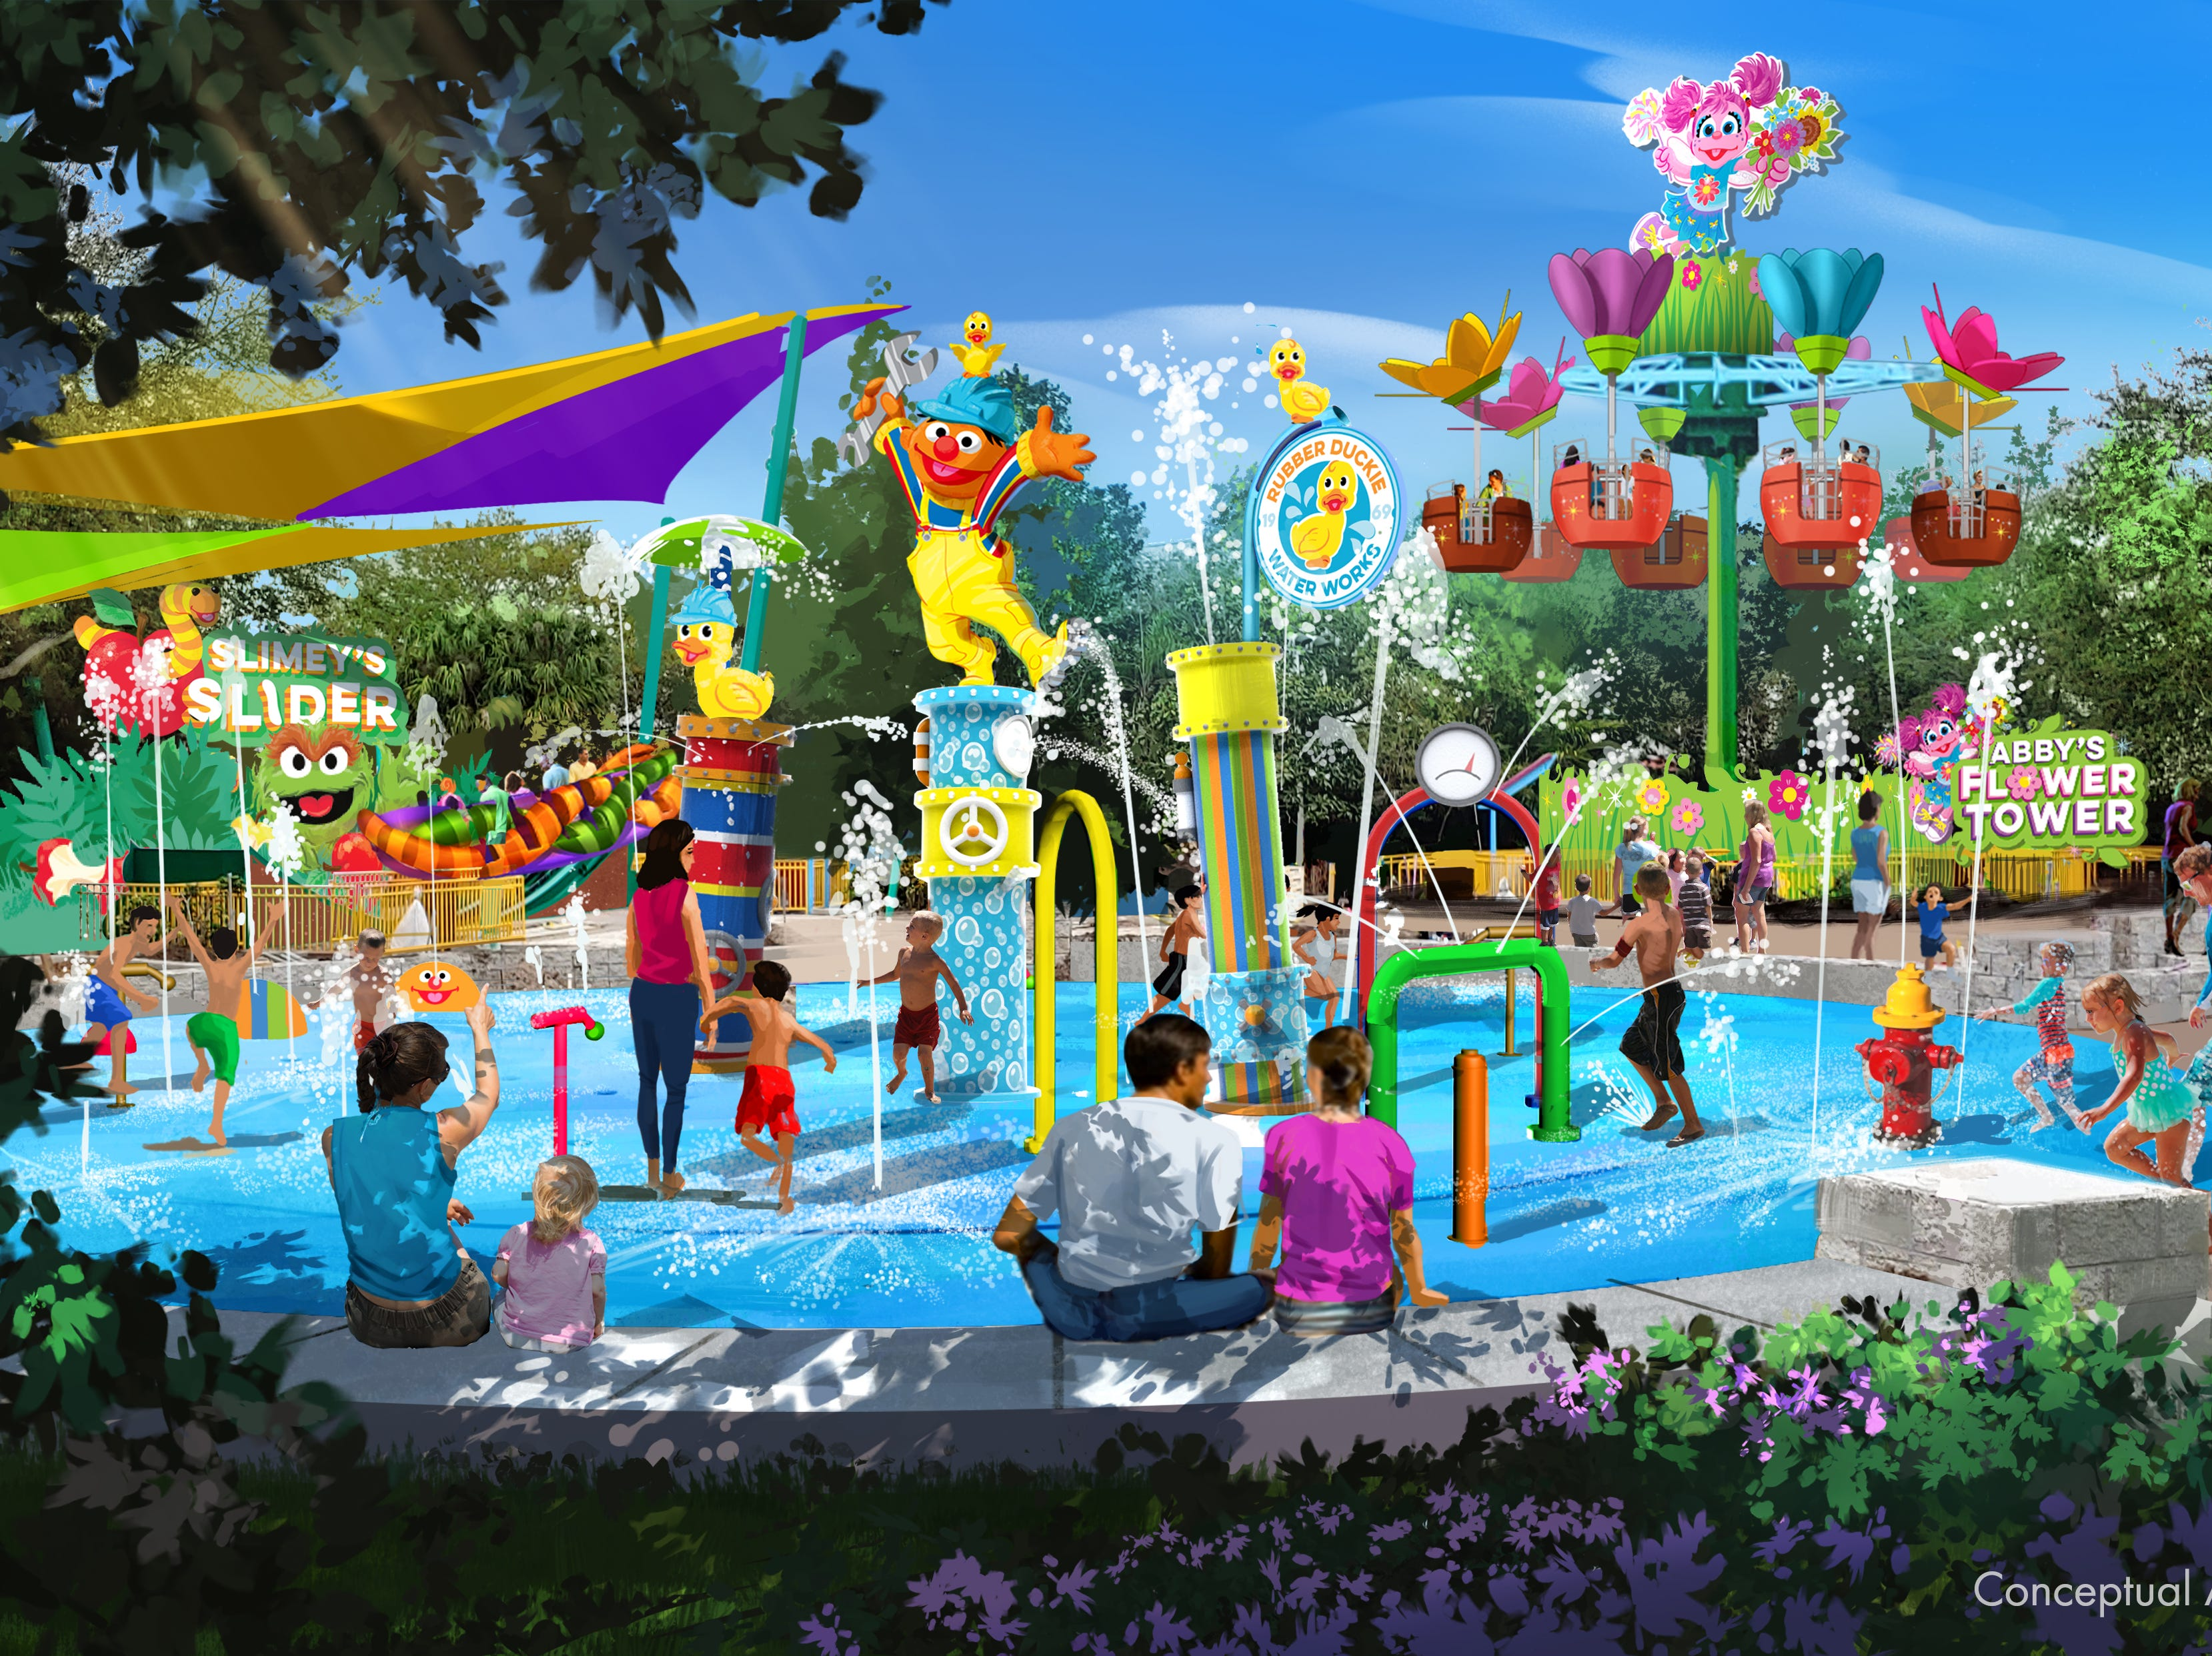 Rubber Ducky Water Works is a water play area at Sesame Street Land at Seaworld Orlando. The attraction opens March 27, 2019.